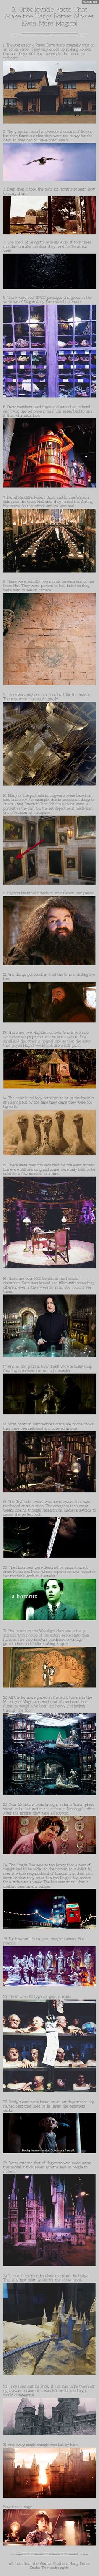 31 harry potter facts that makes the movie more magical